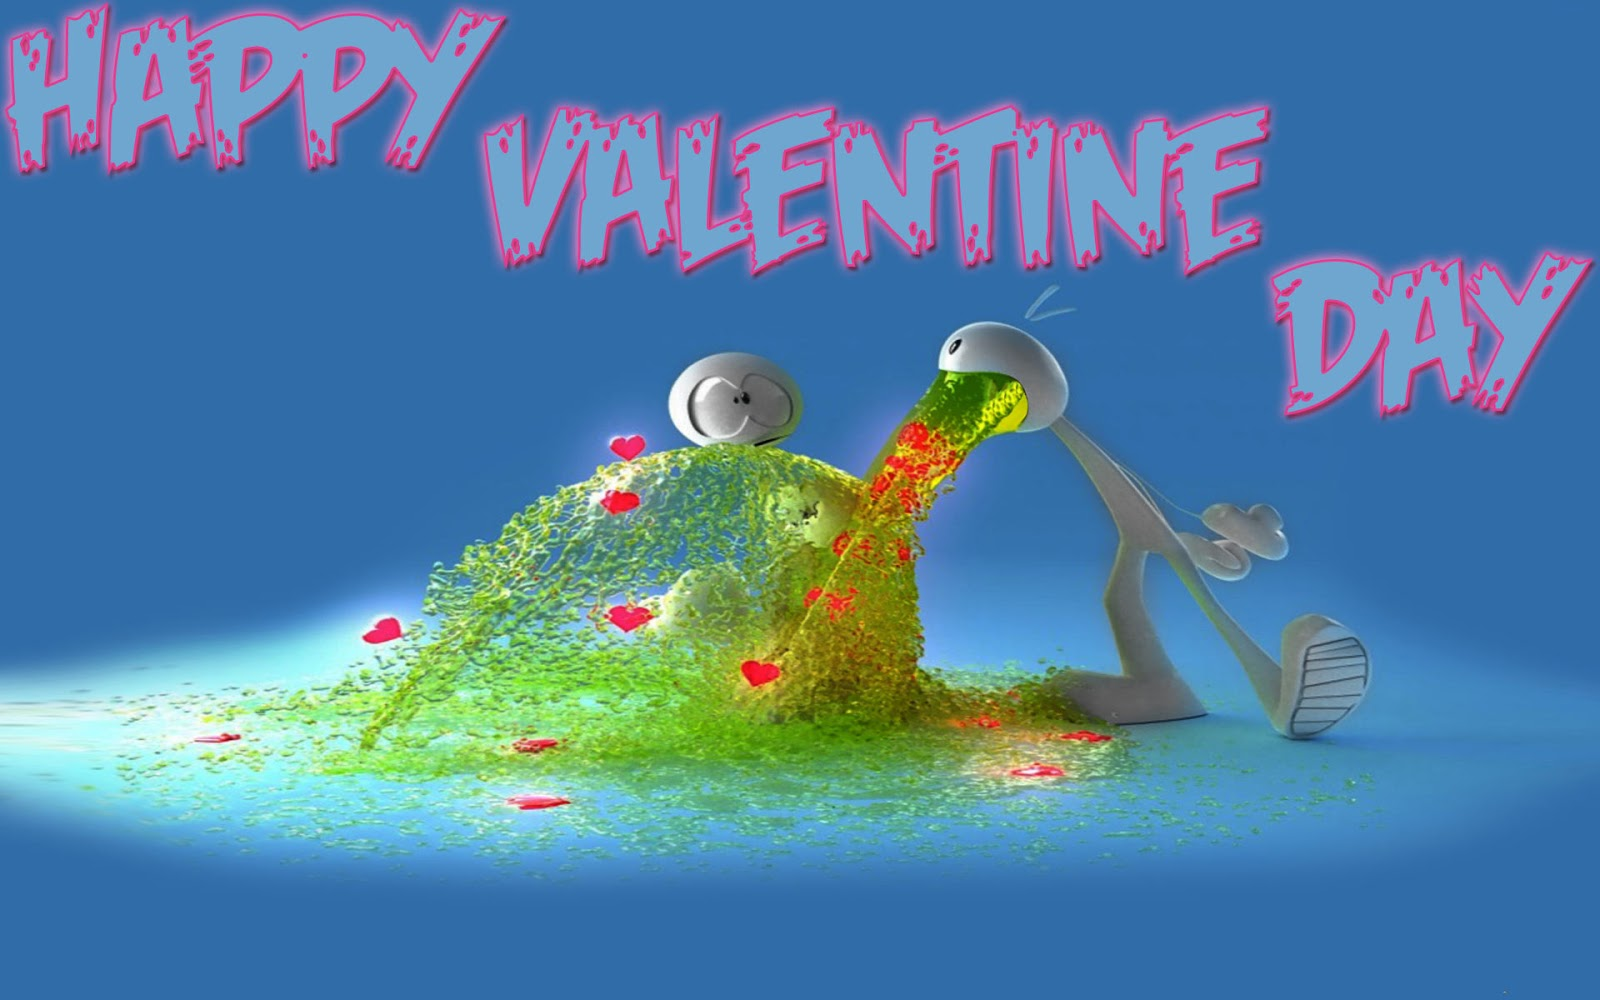 Top Ten Happy Valentine's Day Greeting Wishes Hd